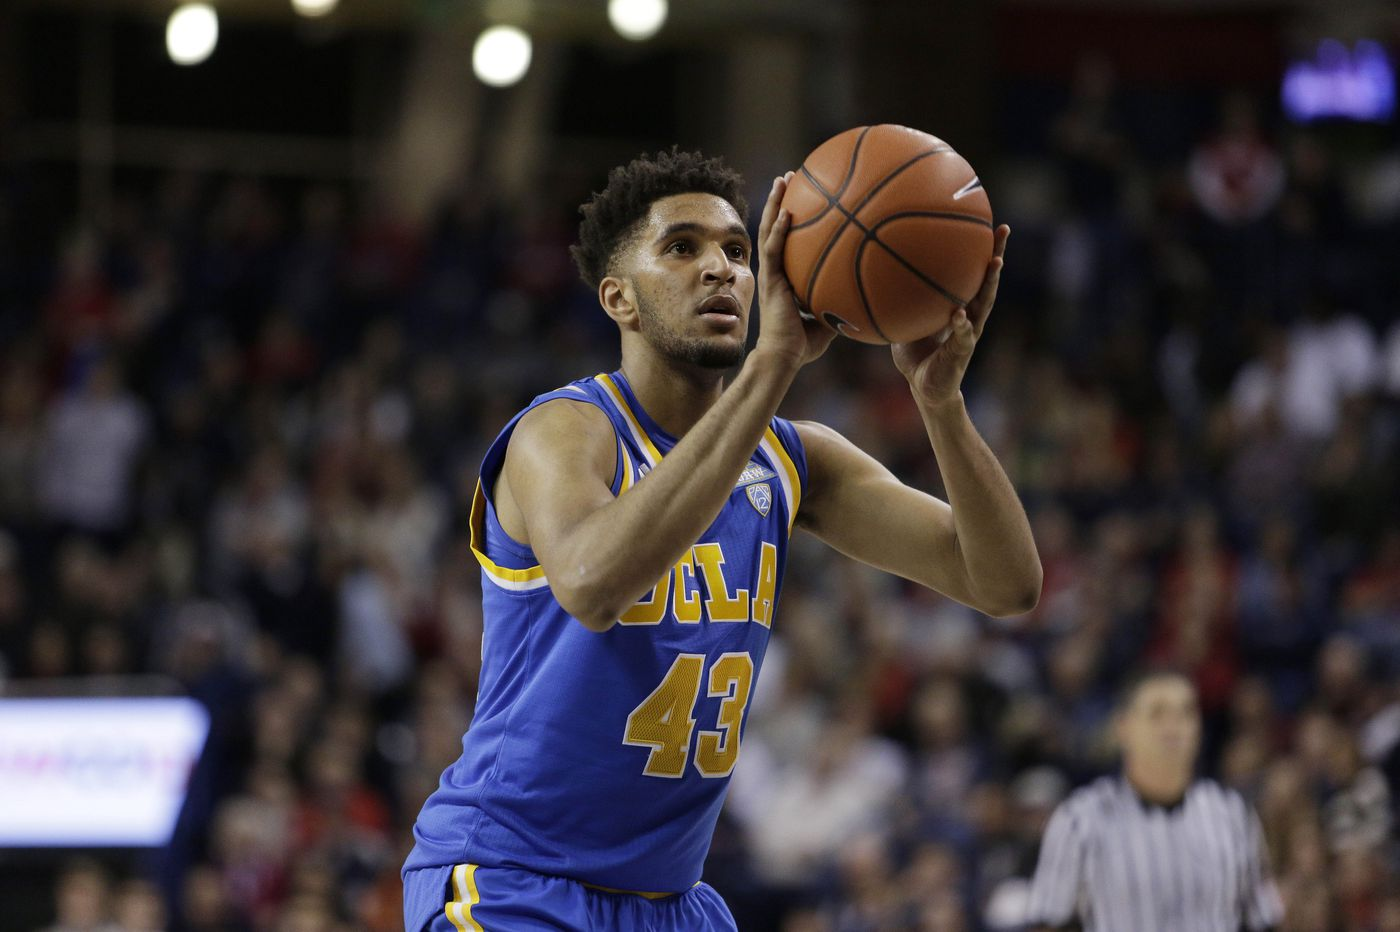 Jonah Bolden says he's playing for Sixers this season